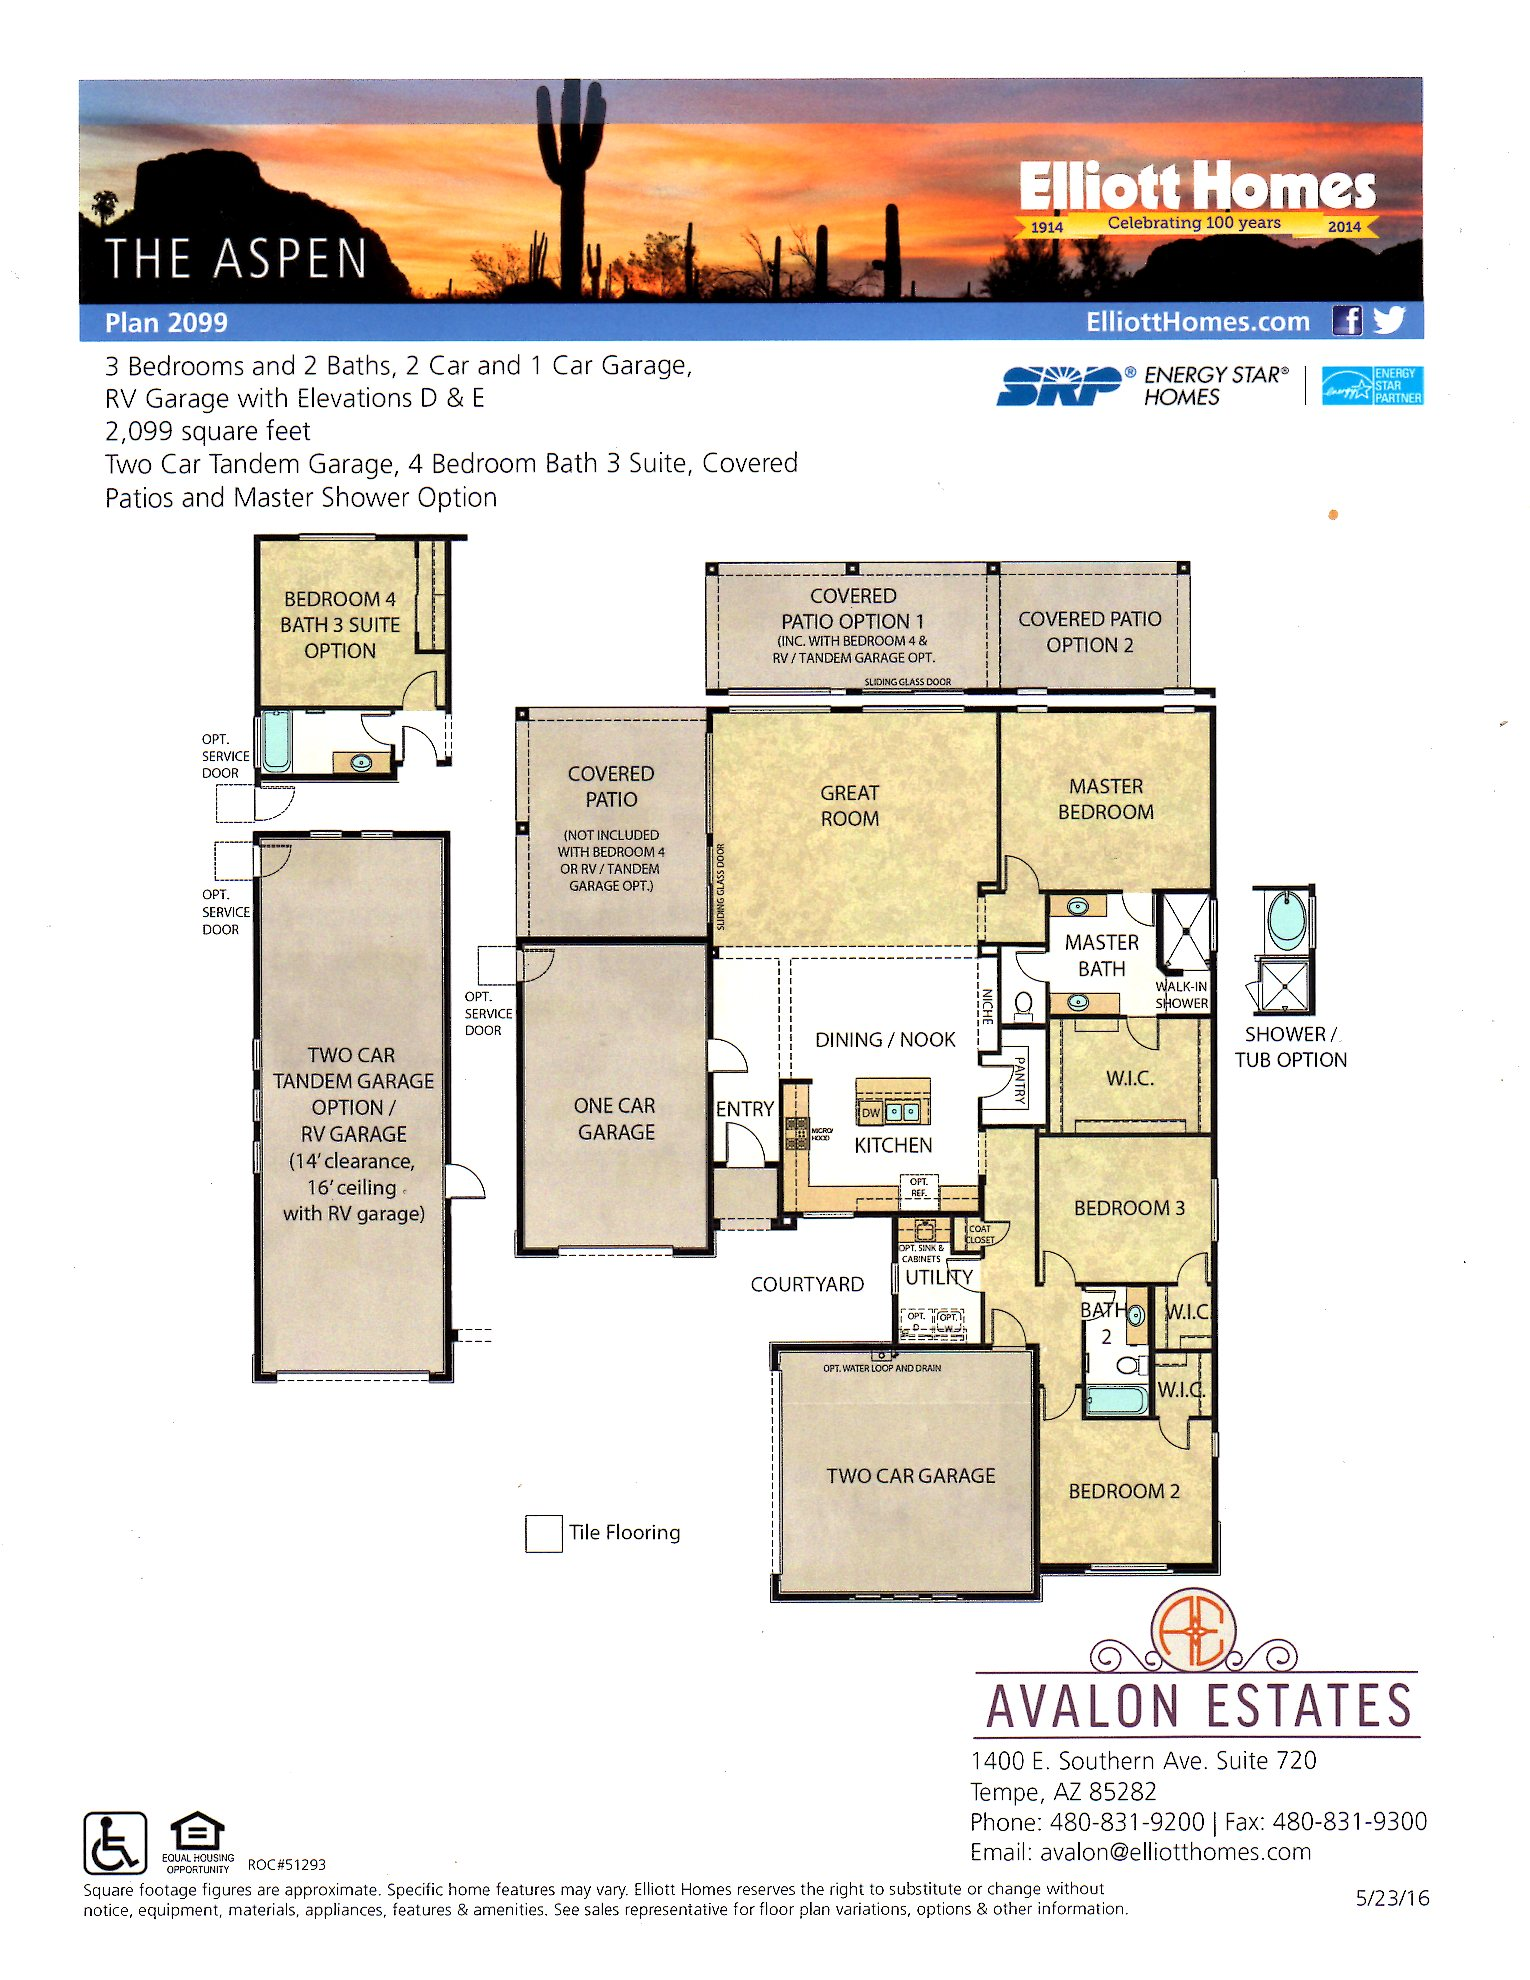 The Aspen - Single Level Home